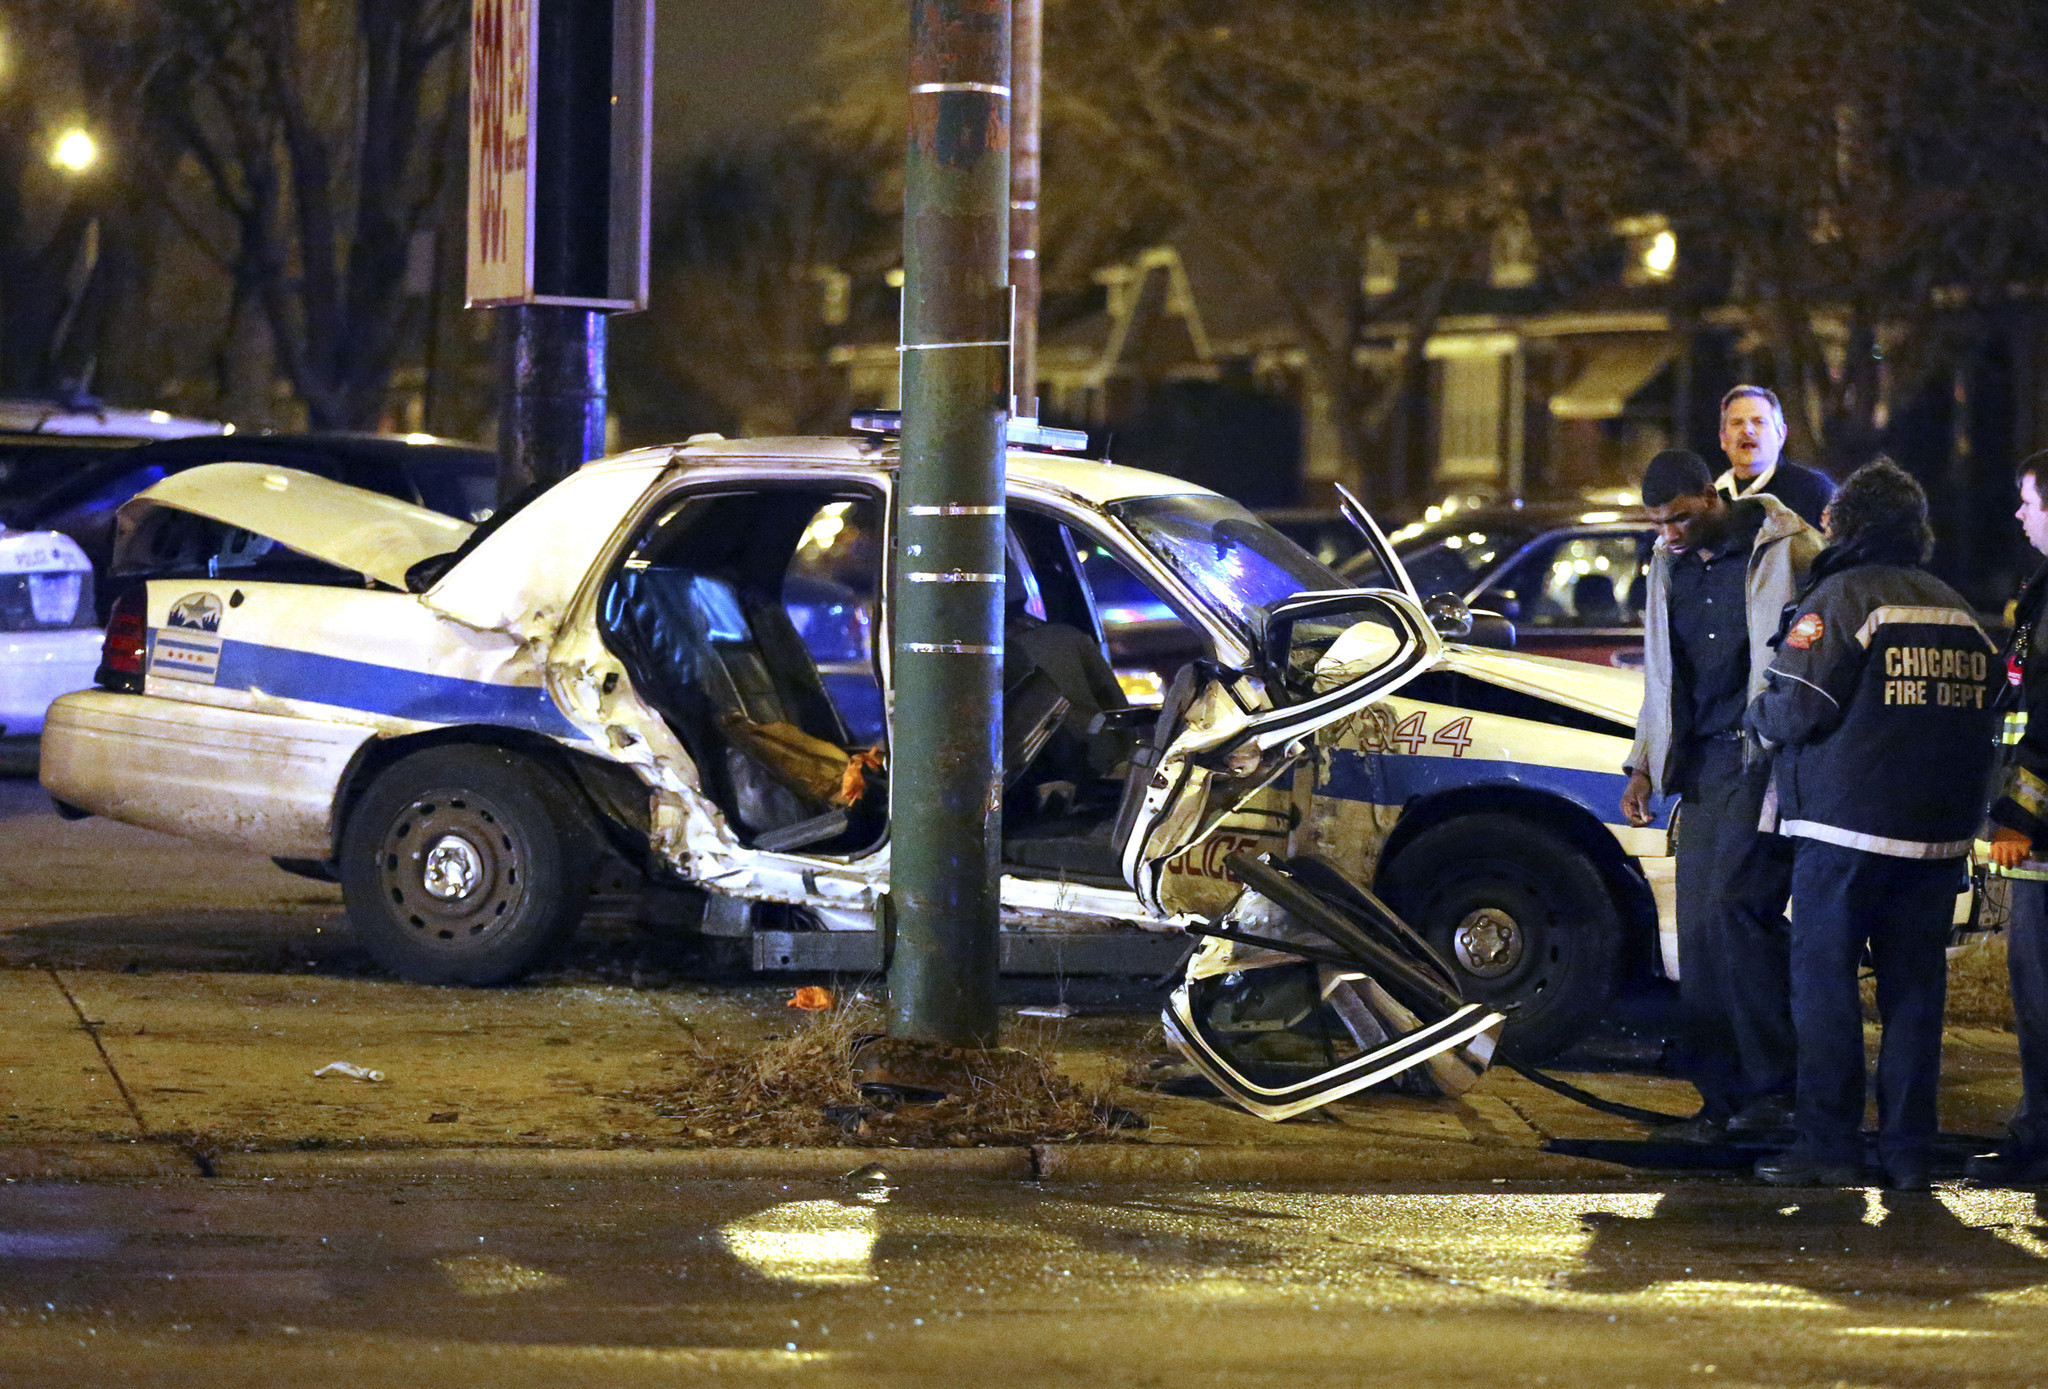 Chicago Police Car Accident Report